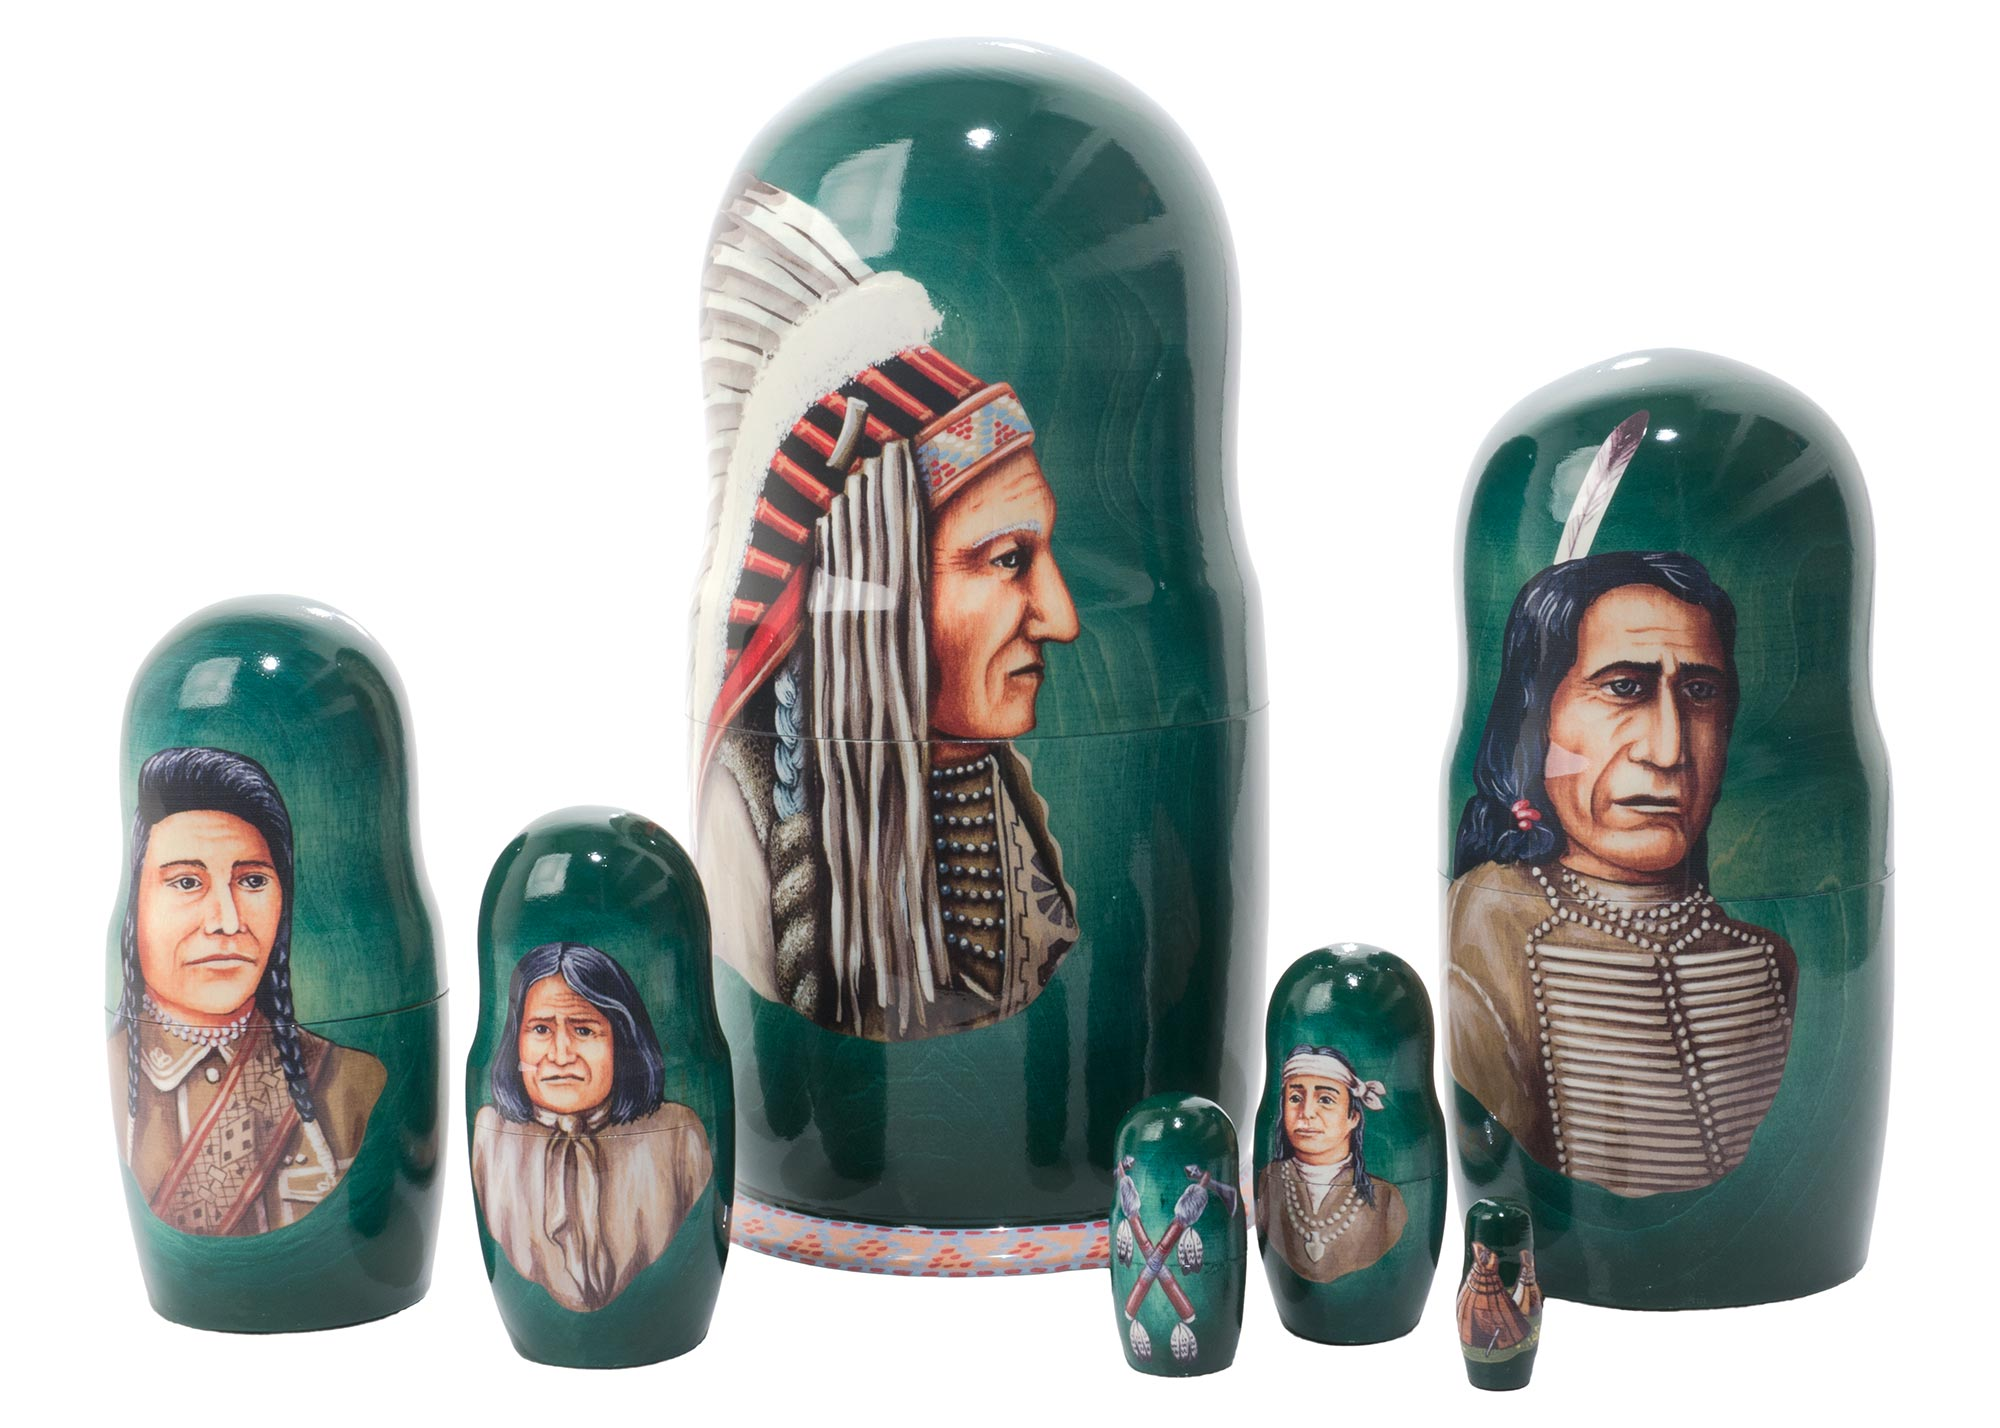 "Buy Indian Chiefs Nesting Doll 7pc./8"" at GoldenCockerel.com"